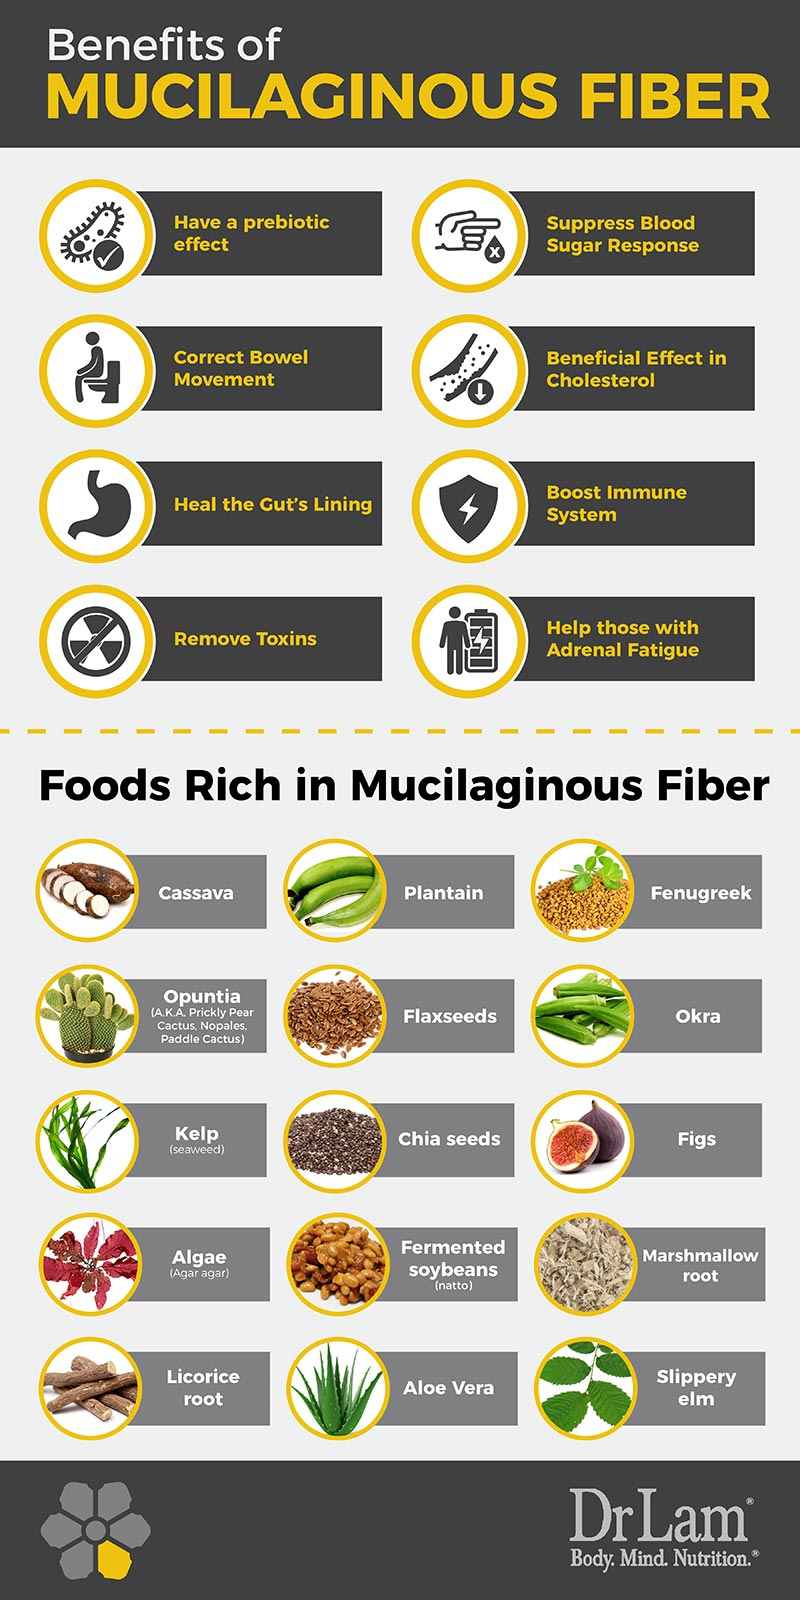 Check out this easy to understand infographic about the benefits of mucilaginous fiber